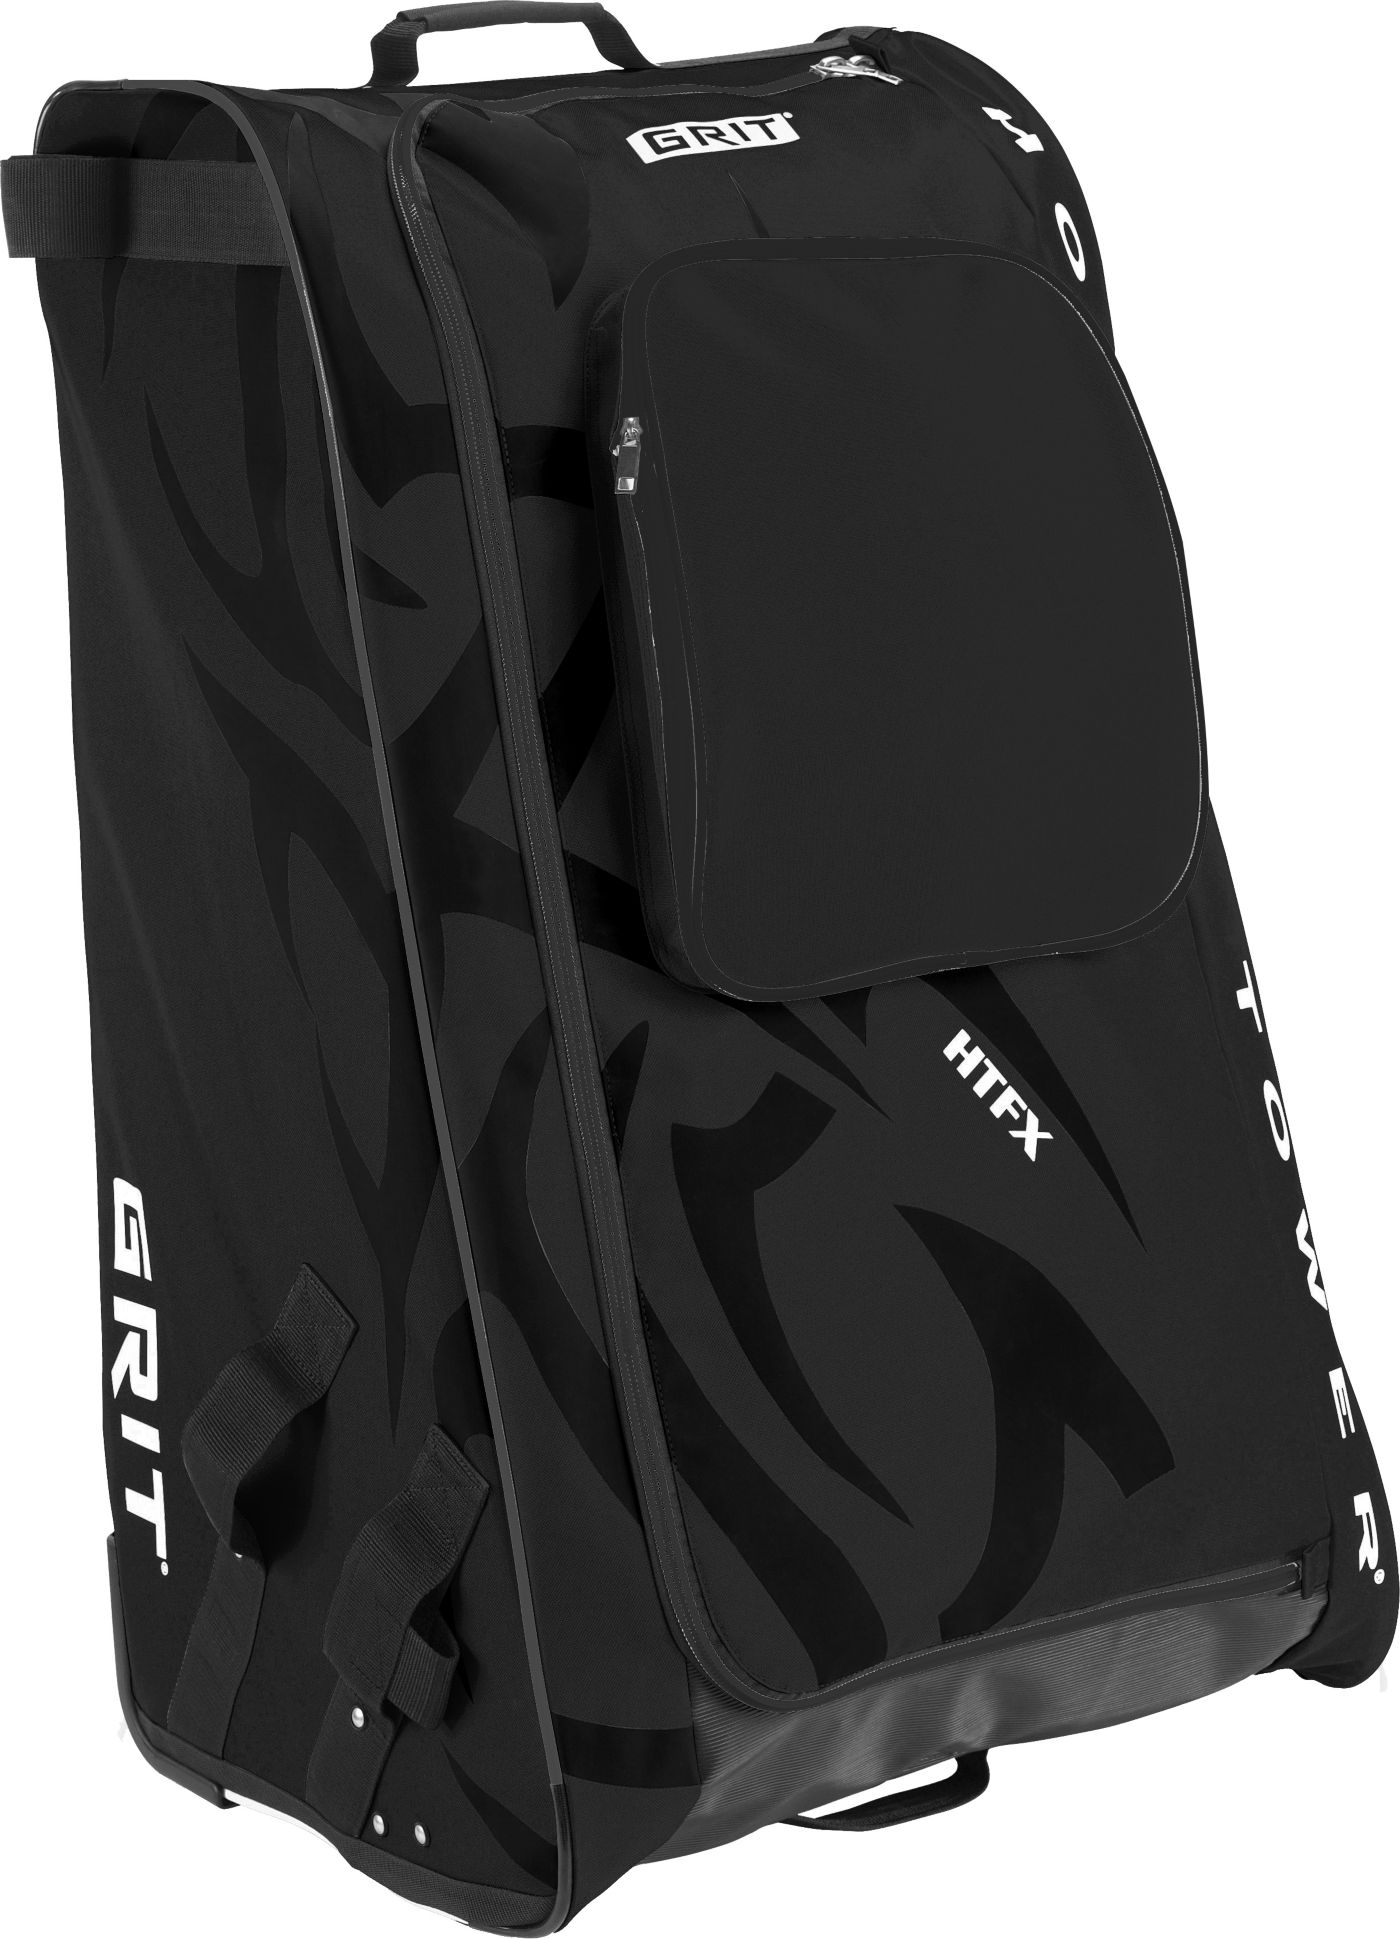 Grit HTFX 33'' Hockey Tower Wheel Bag